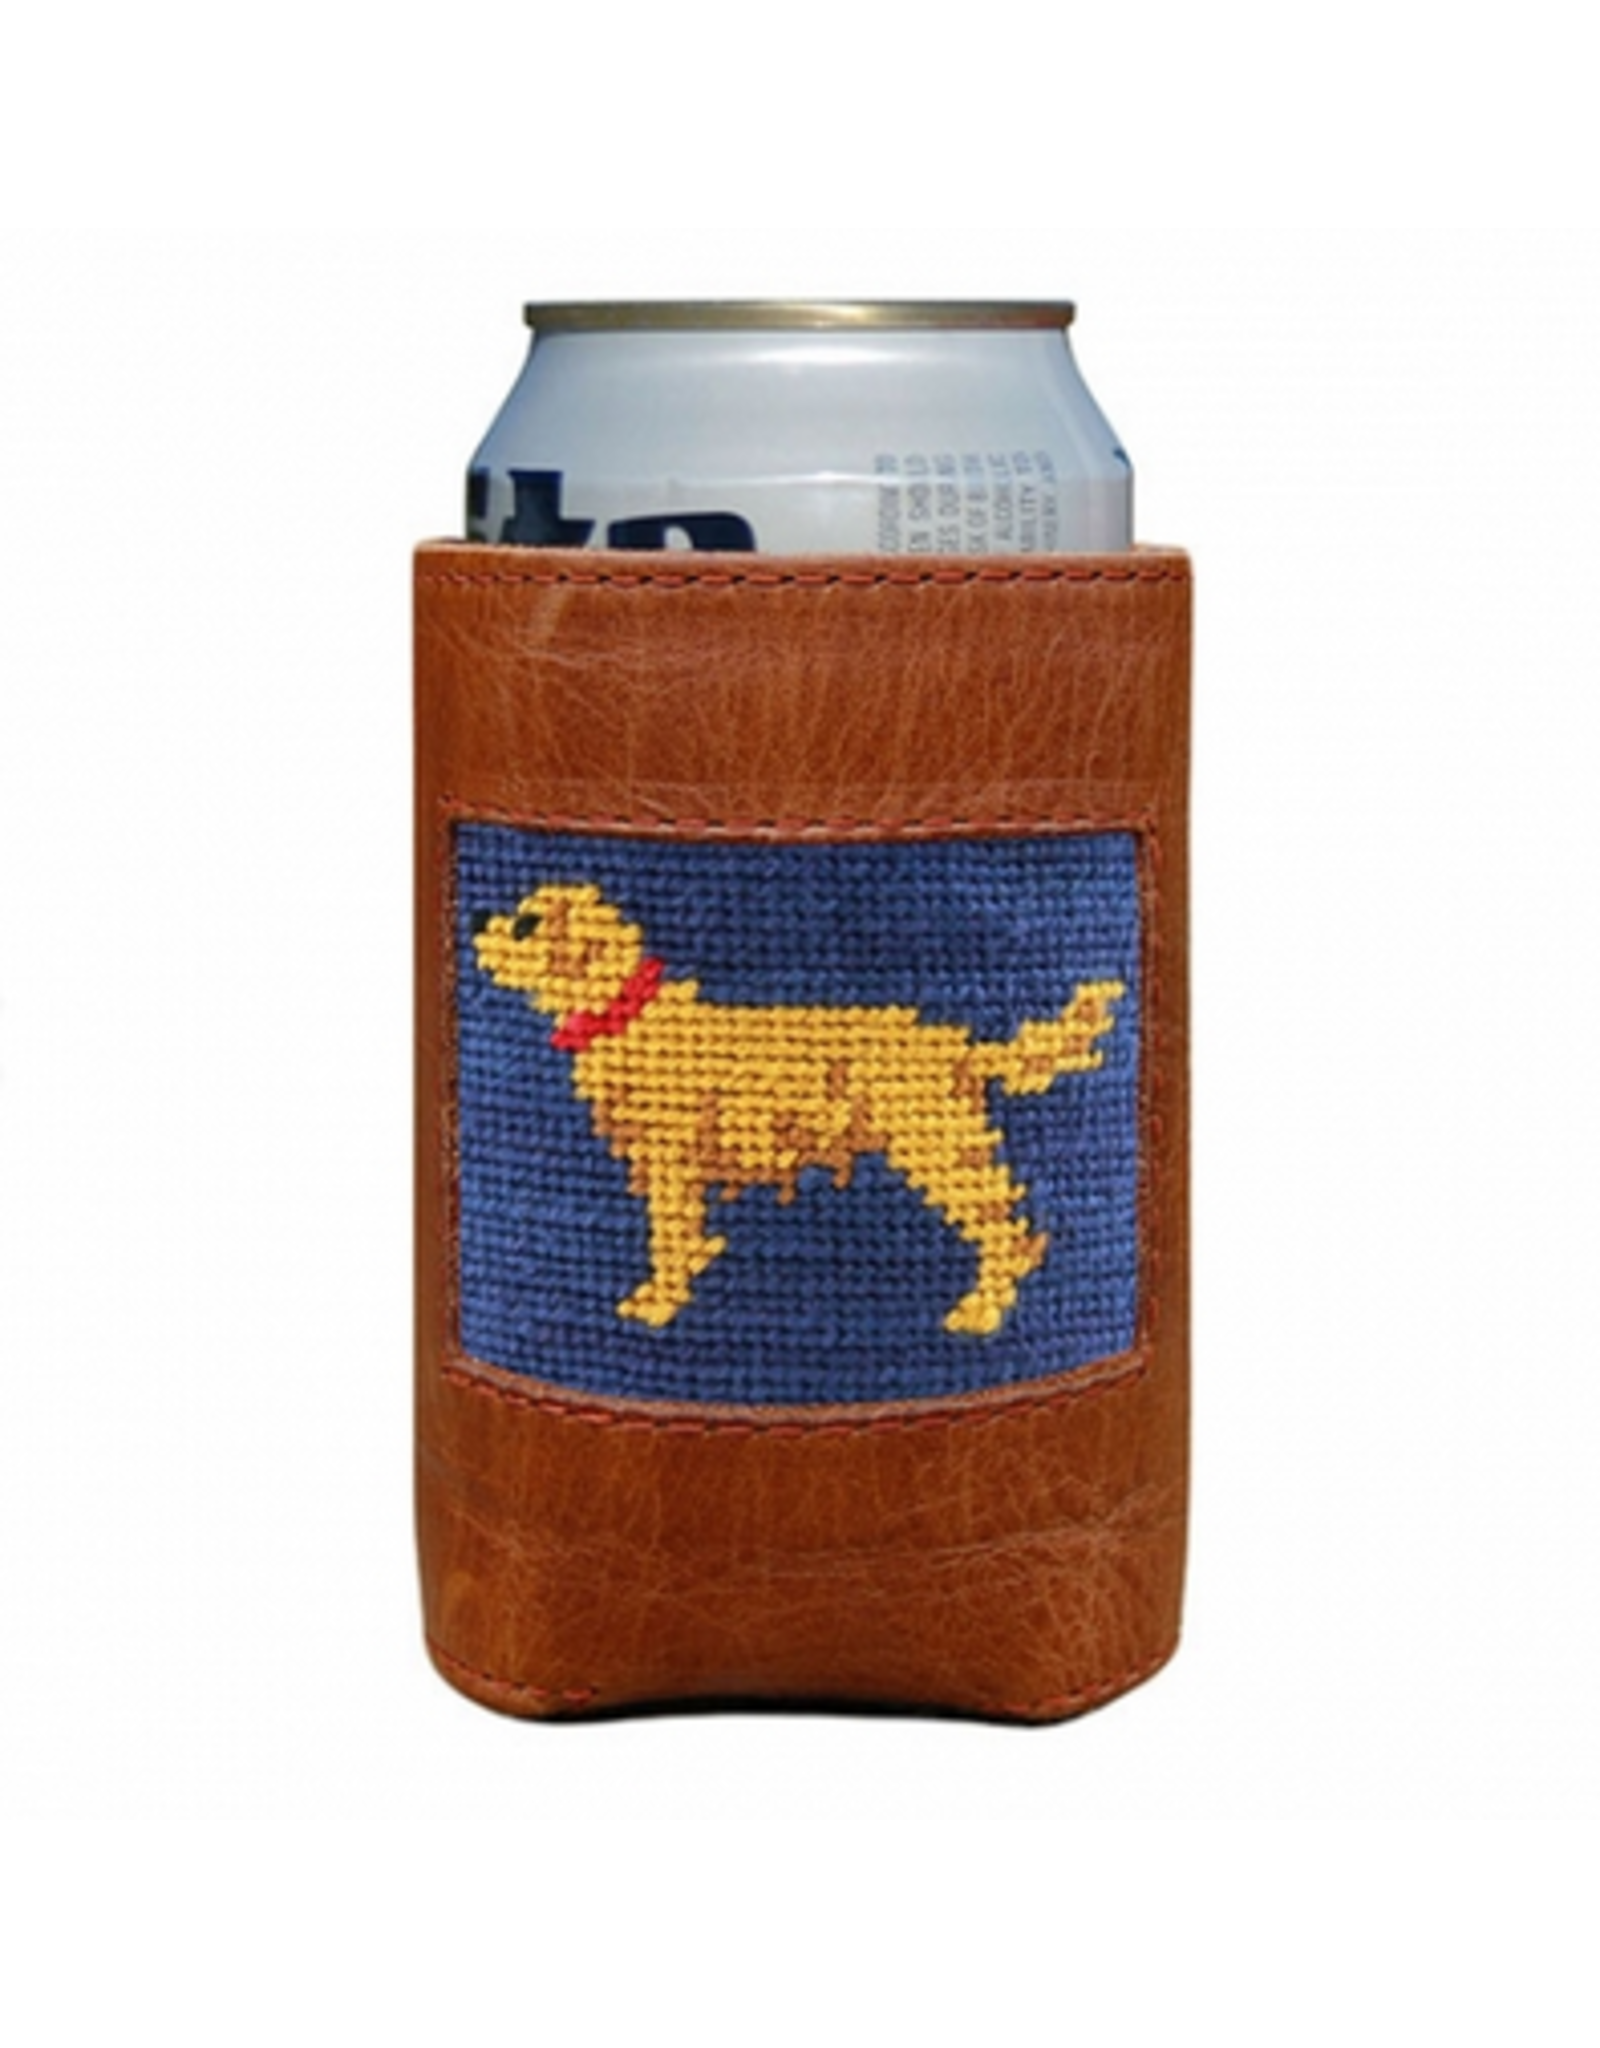 Smathers & Branson S&B Needlepoint Can Cooler, Golden Retriever